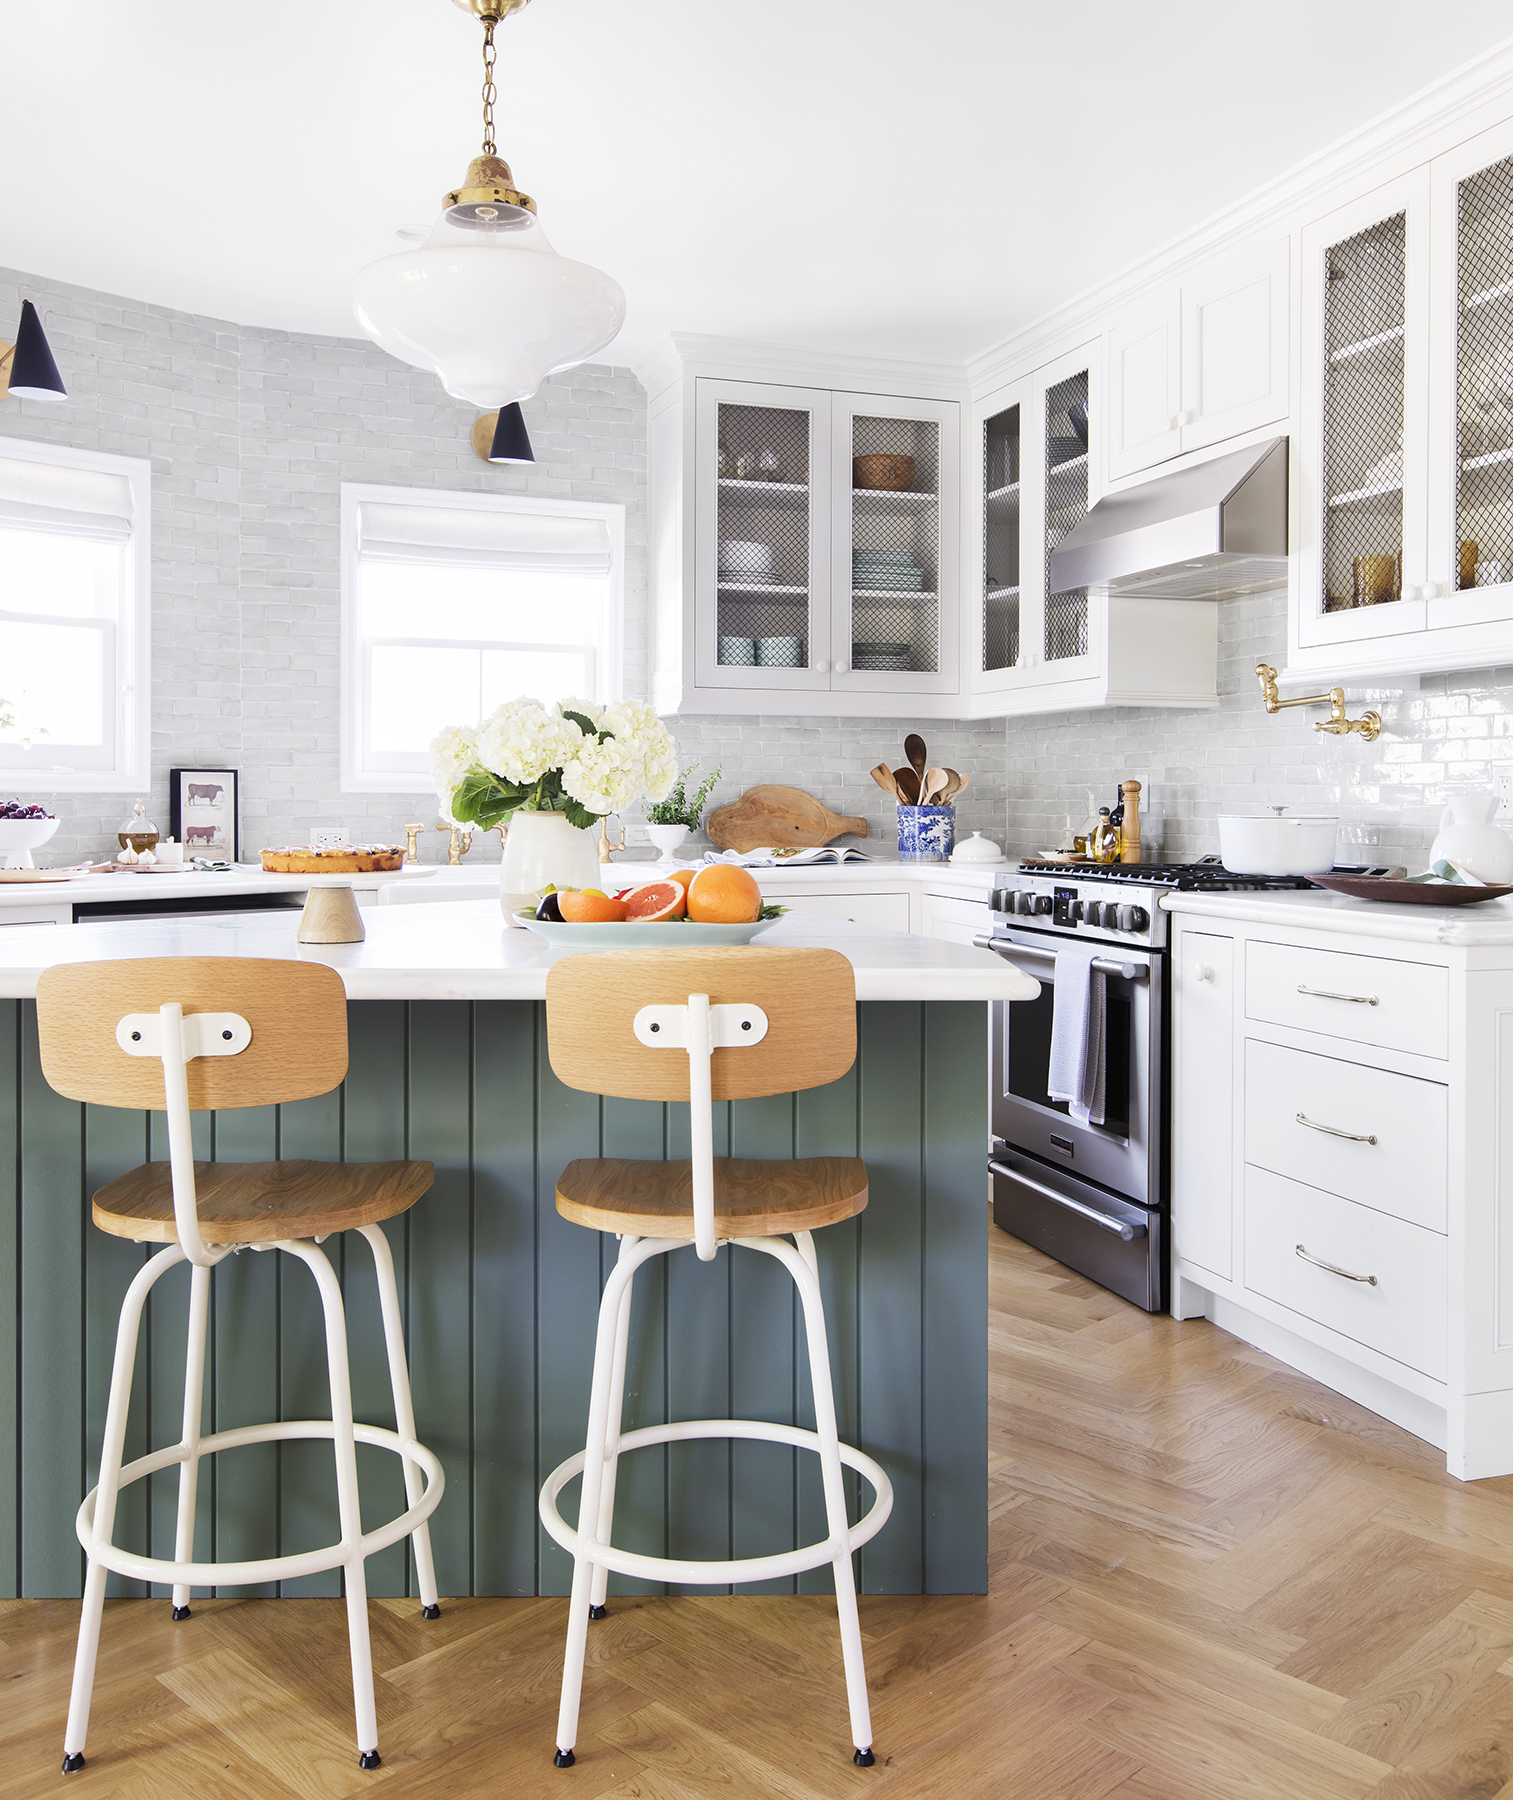 How To Maximize Your Kitchen Storage Space Real Simple